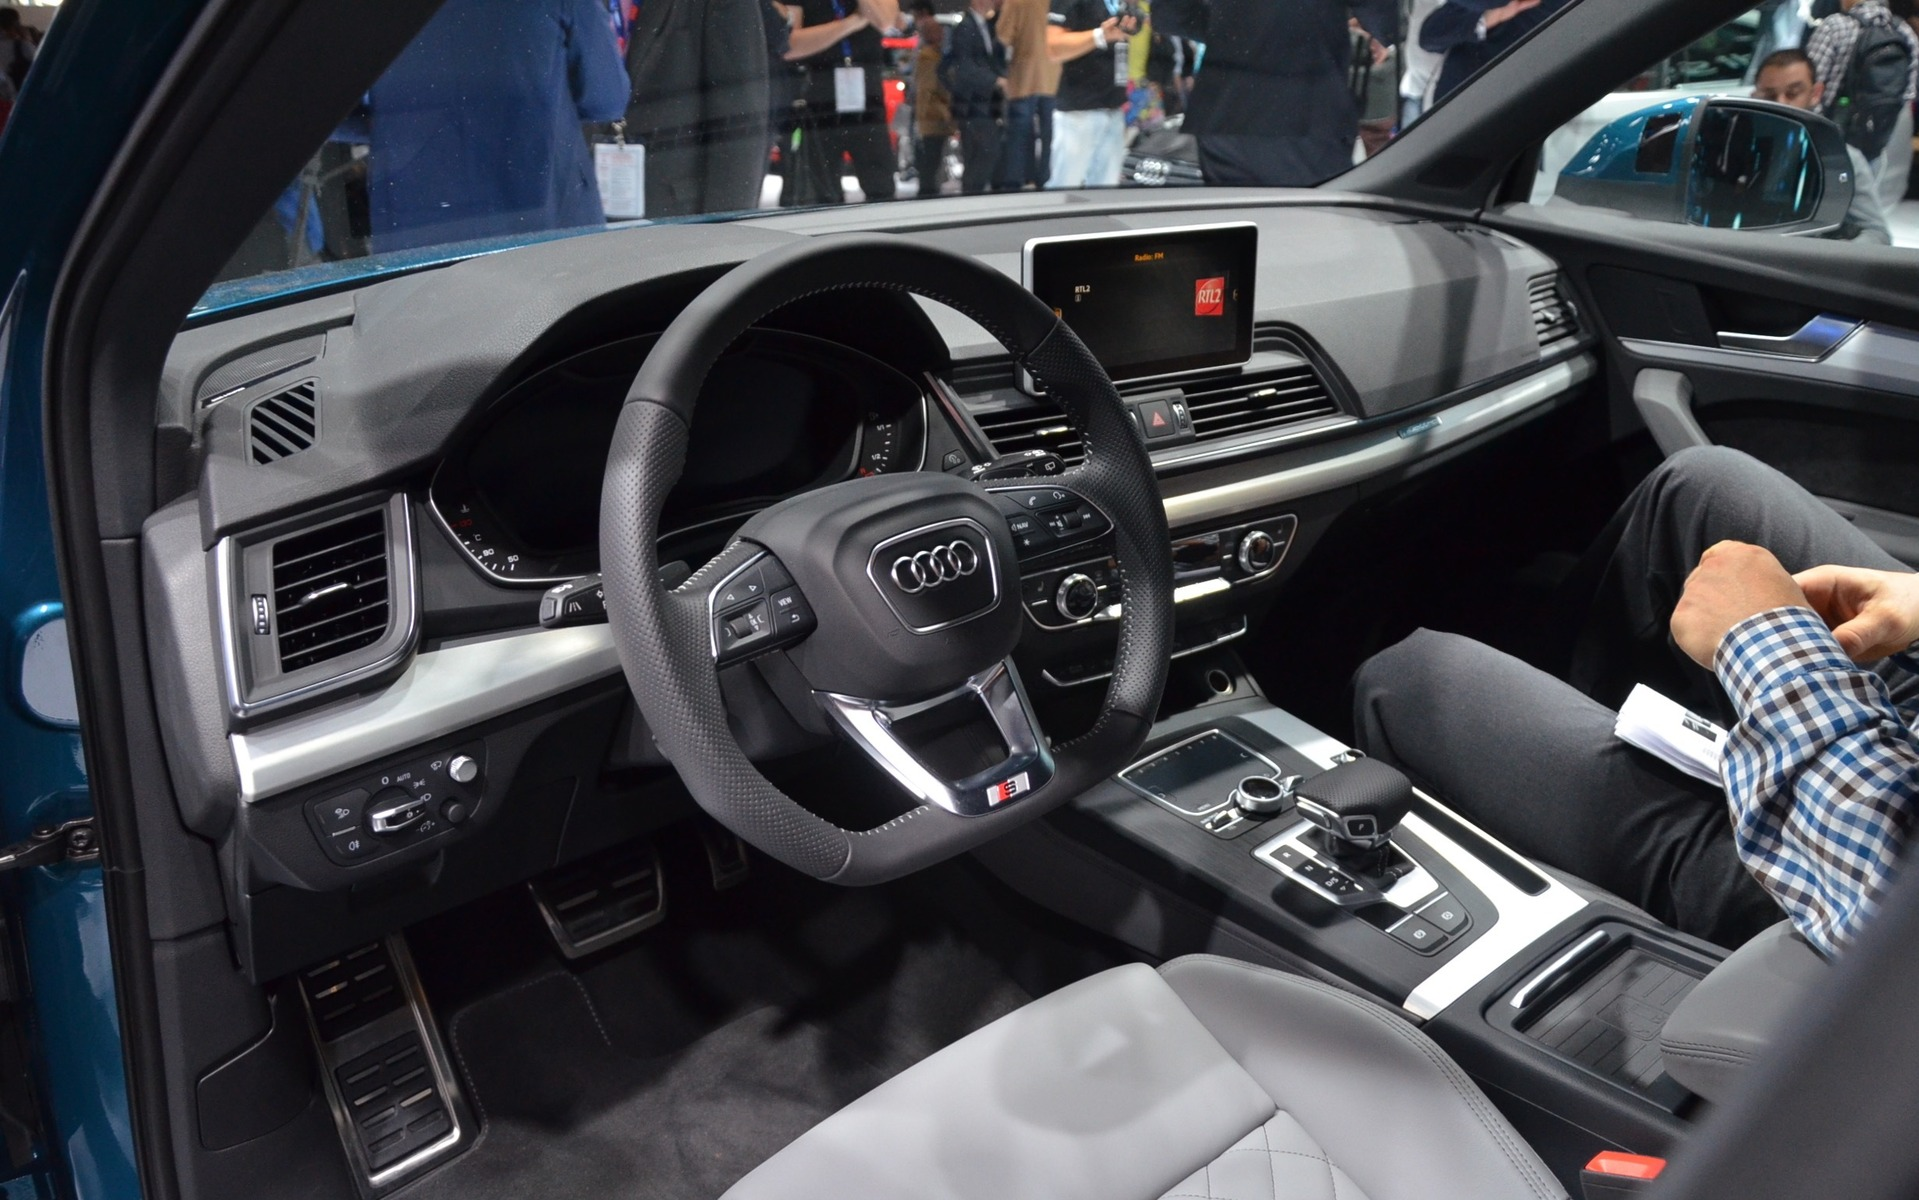 audi q5 2018 premi re mondiale au salon de l 39 auto de paris 6 7. Black Bedroom Furniture Sets. Home Design Ideas